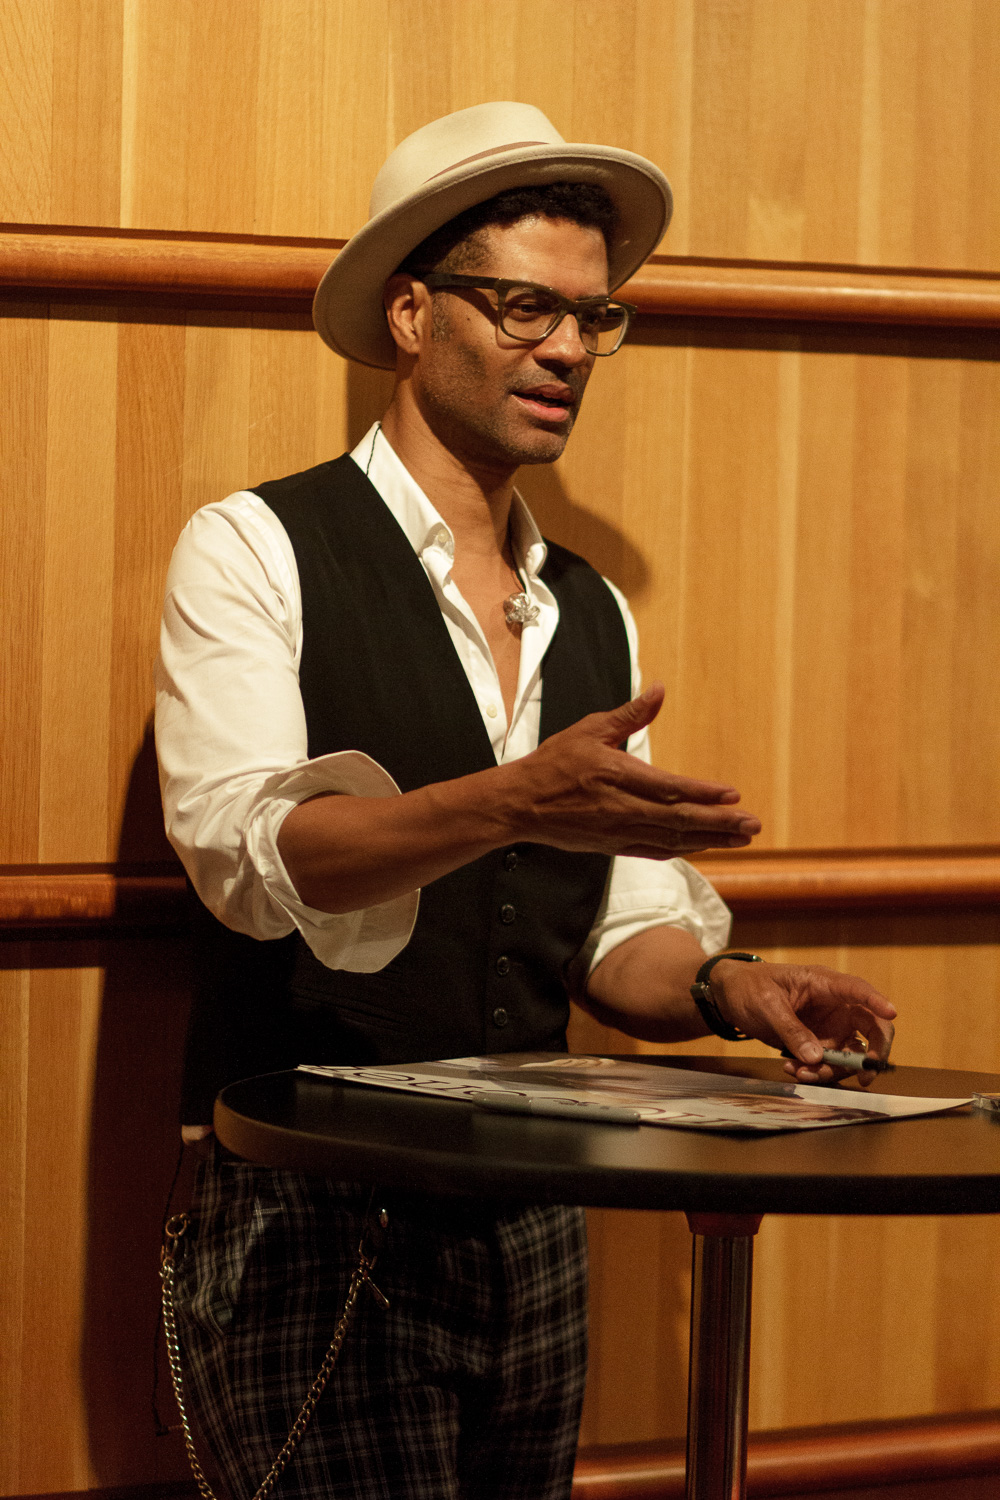 Eric Benet at Tempe Center for the Arts